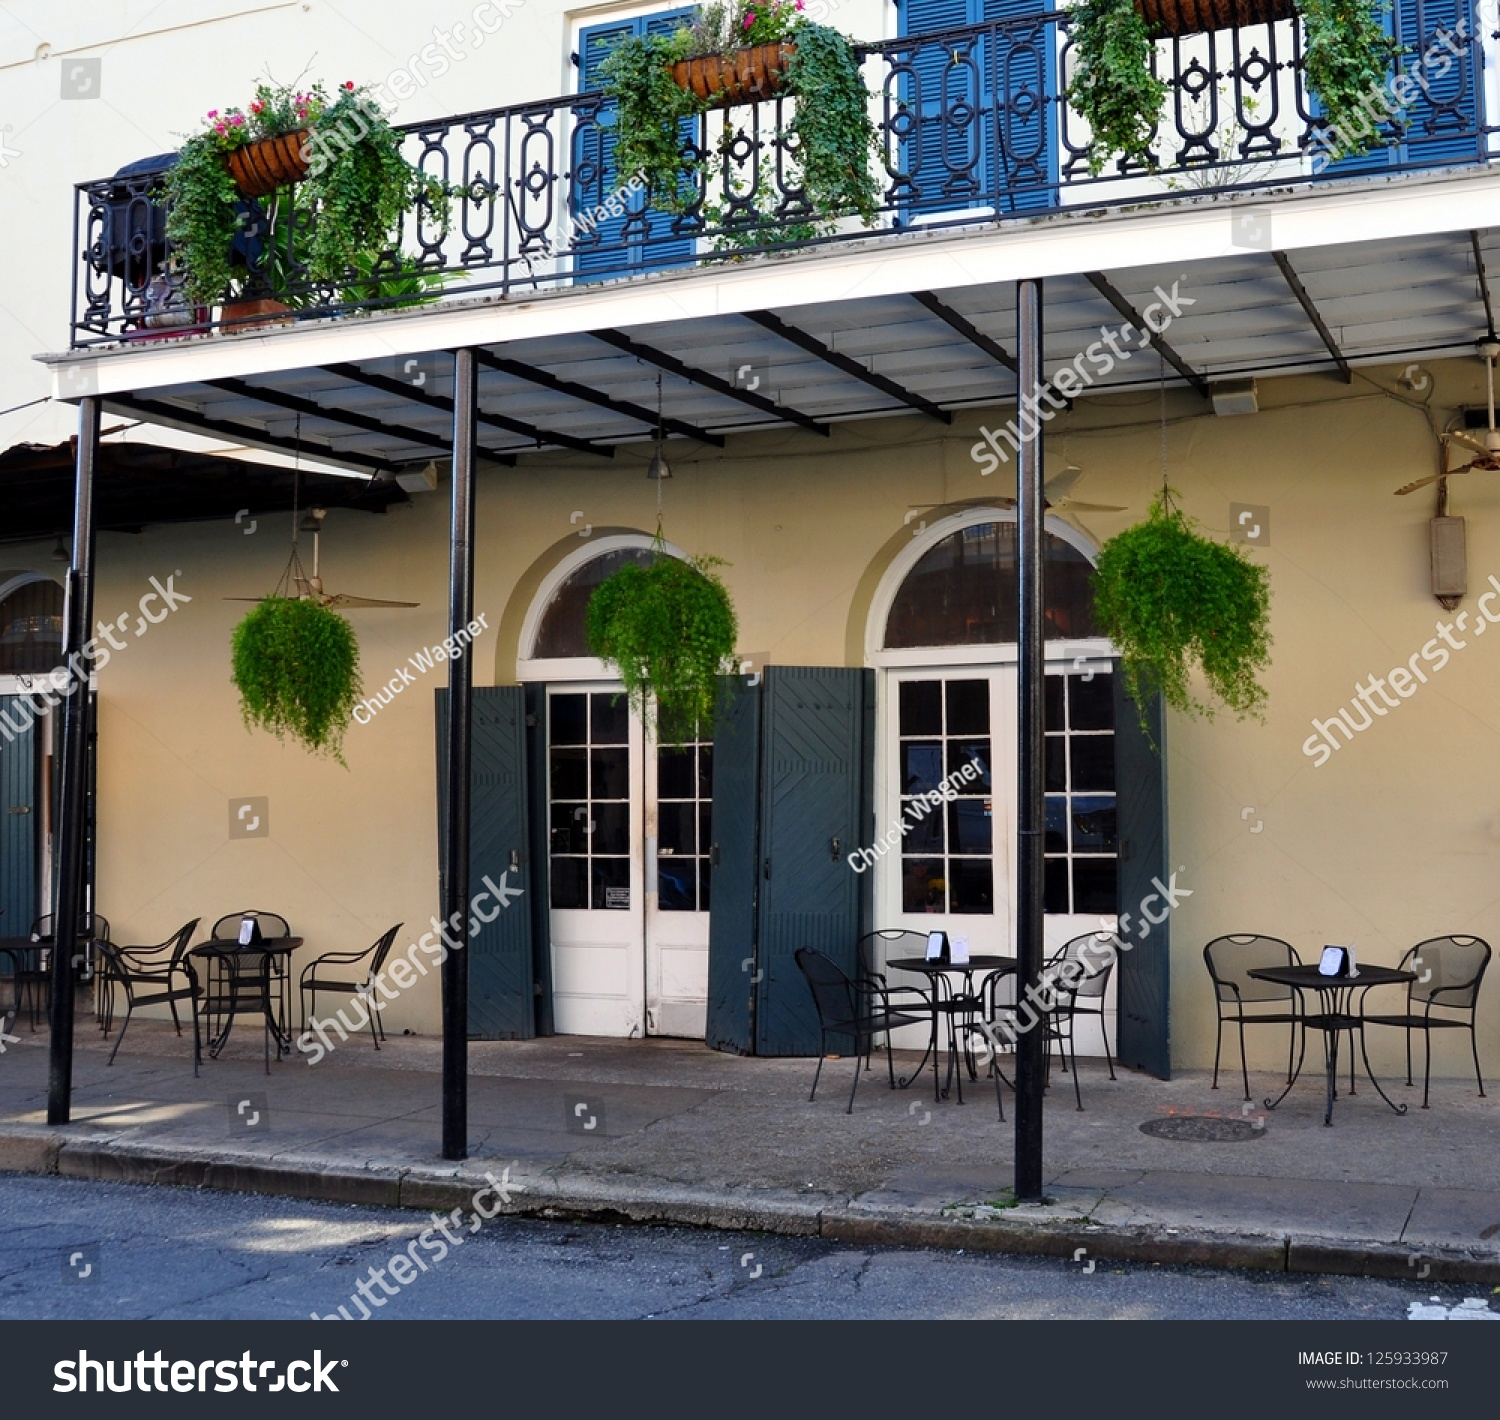 Sidewalk cafe balcony new orleans french stock photo for The balcony cafe